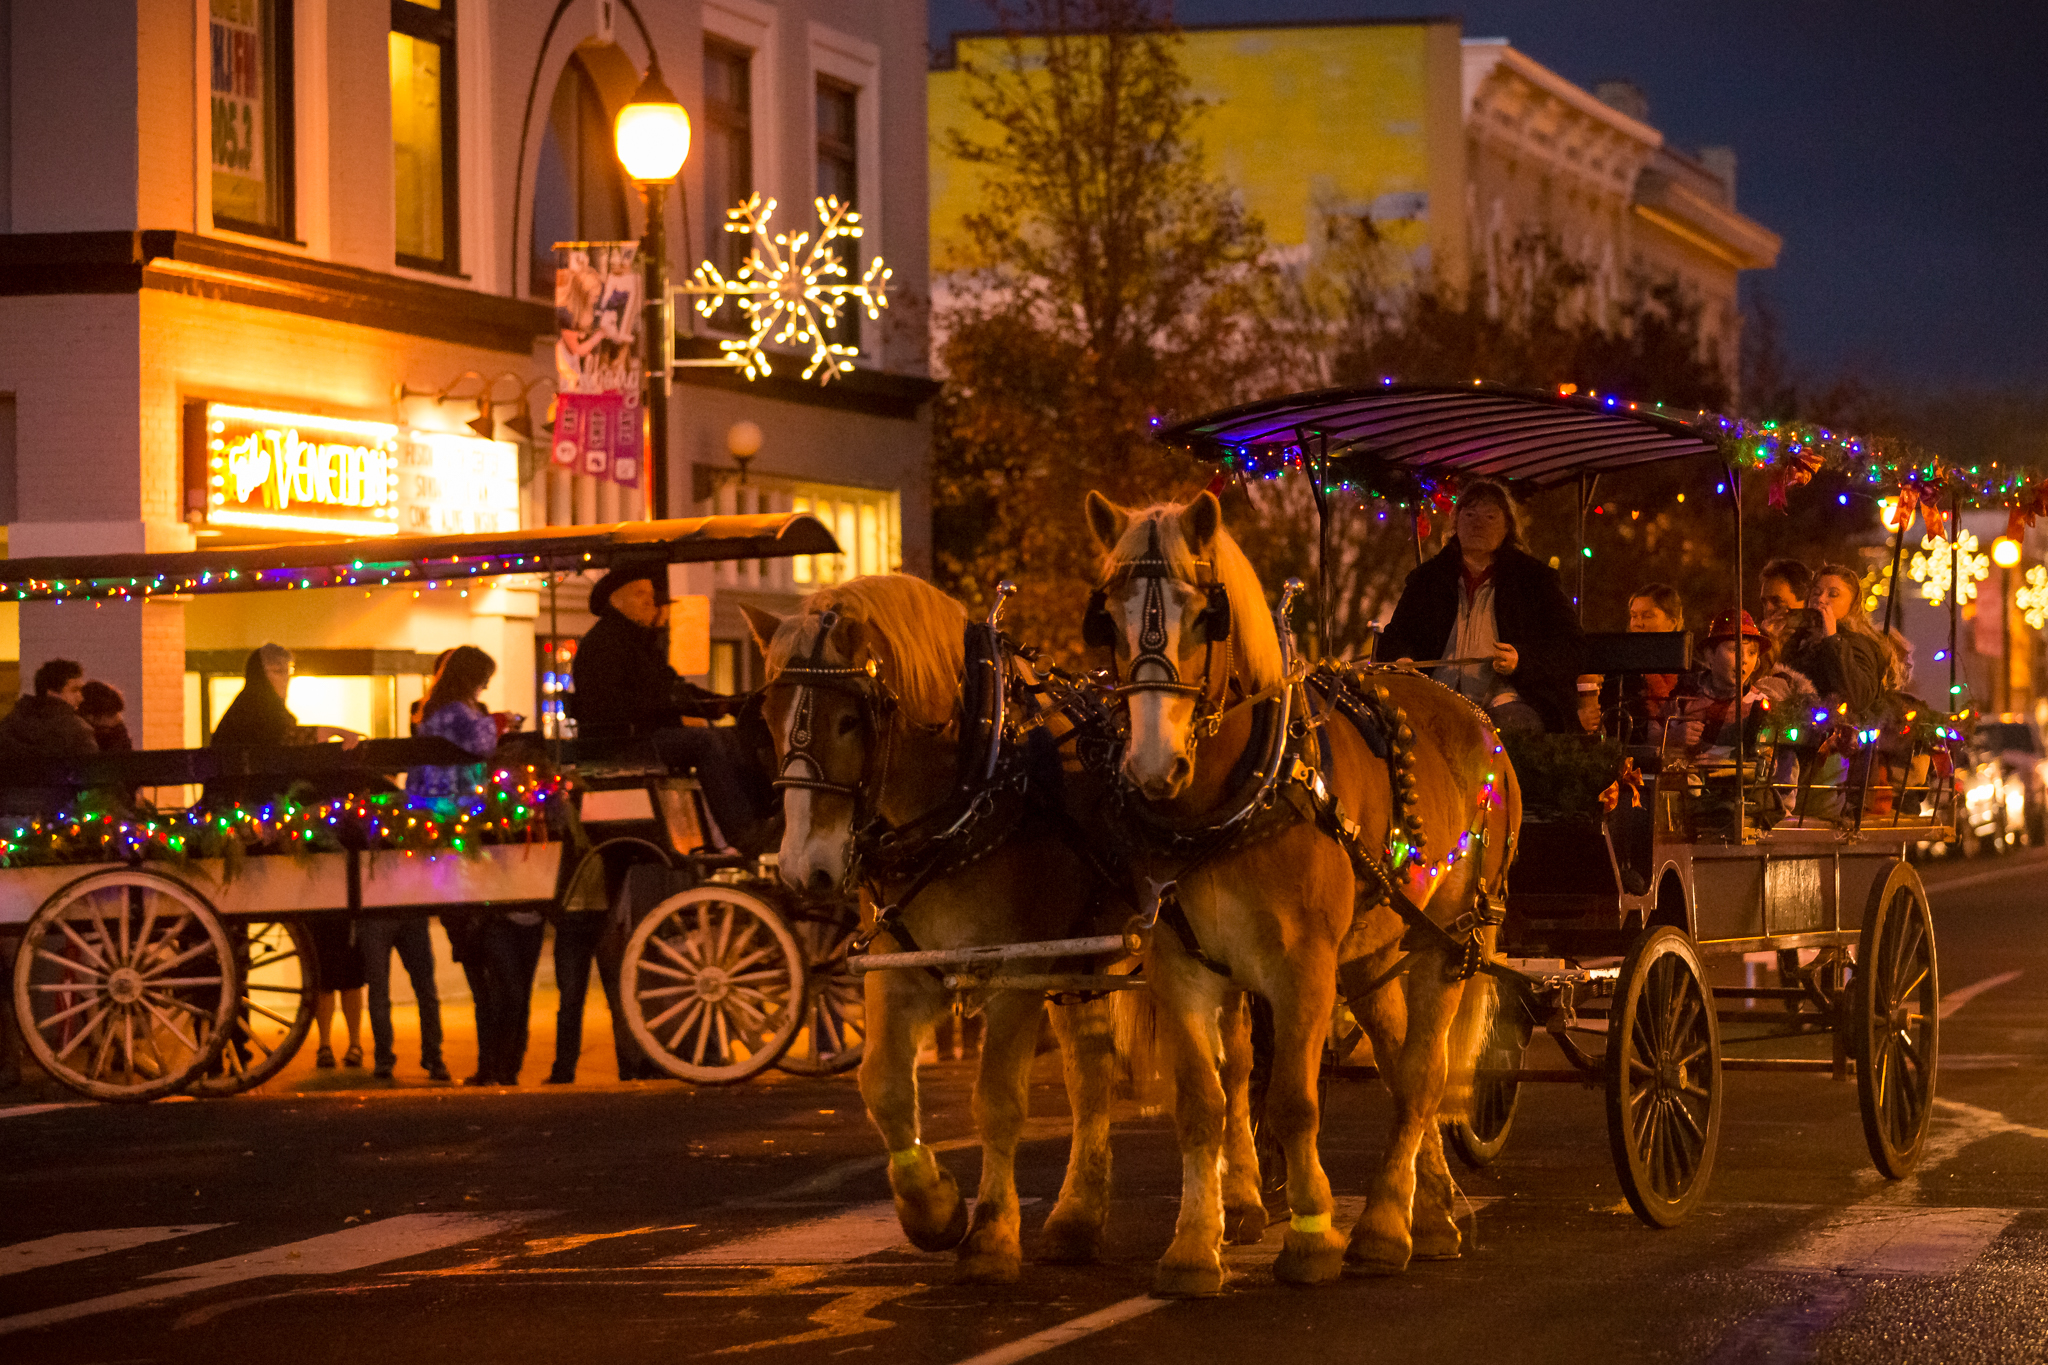 Photo of horses with carriage and trolley with Christmas decorations.